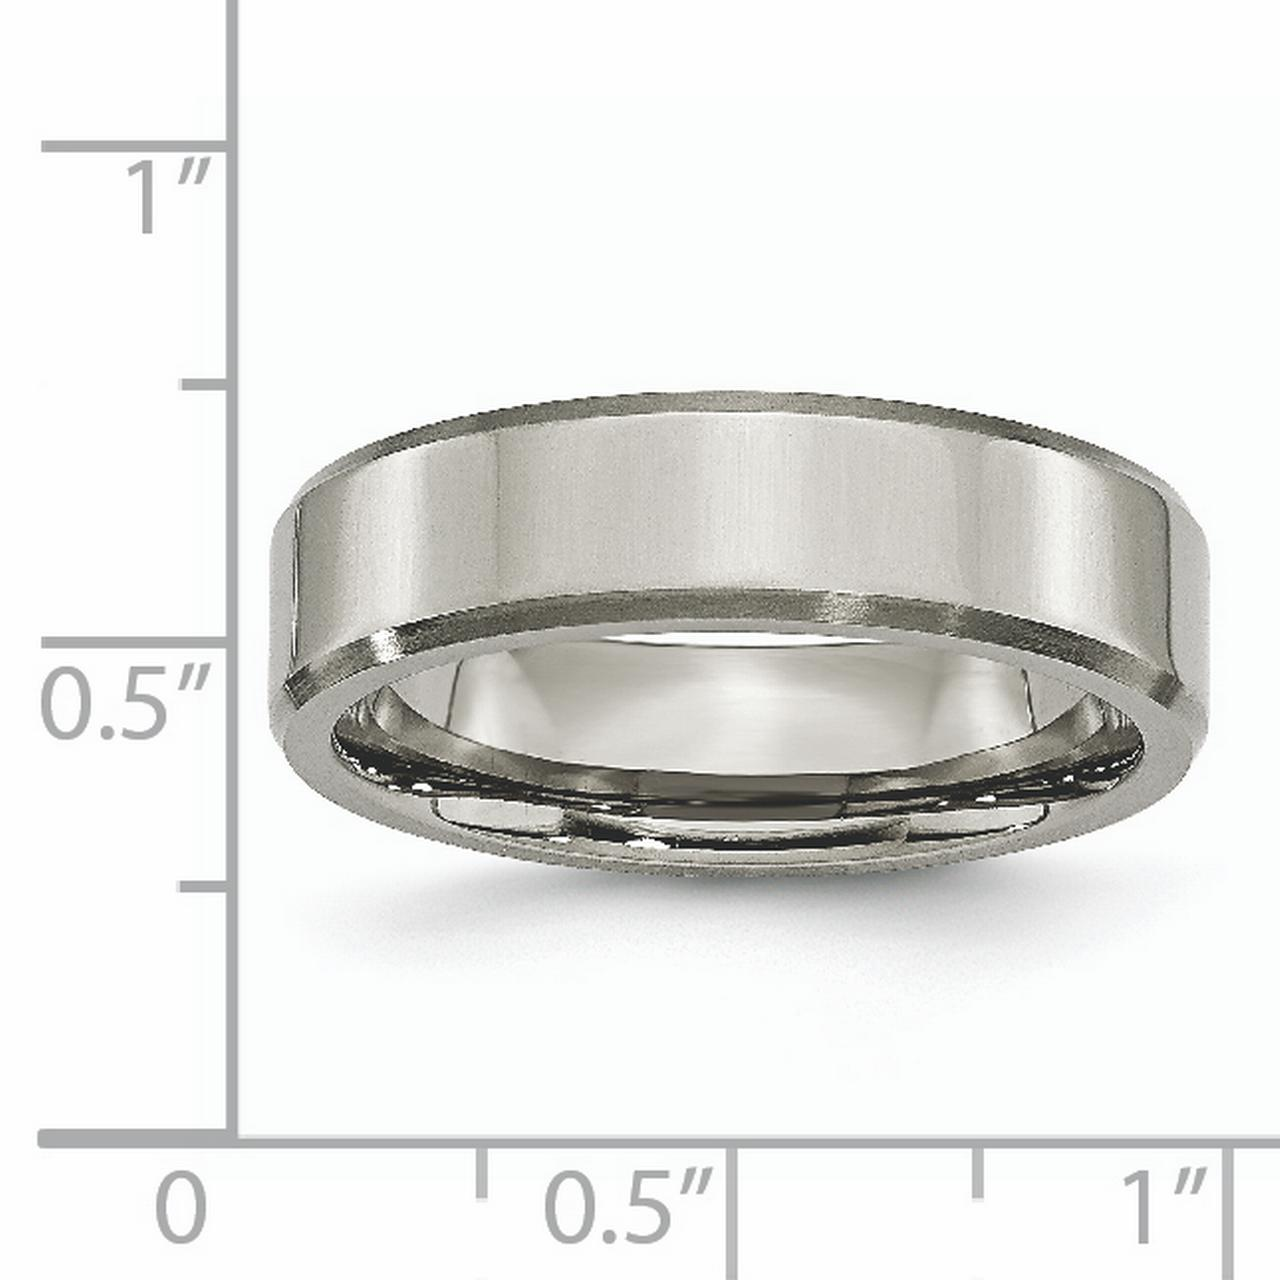 Titanium Beveled Edge 6mm Brushed Wedding Ring Band Size 8.50 Classic Flat W/edge Fashion Jewelry Gifts For Women For Her - image 5 de 6